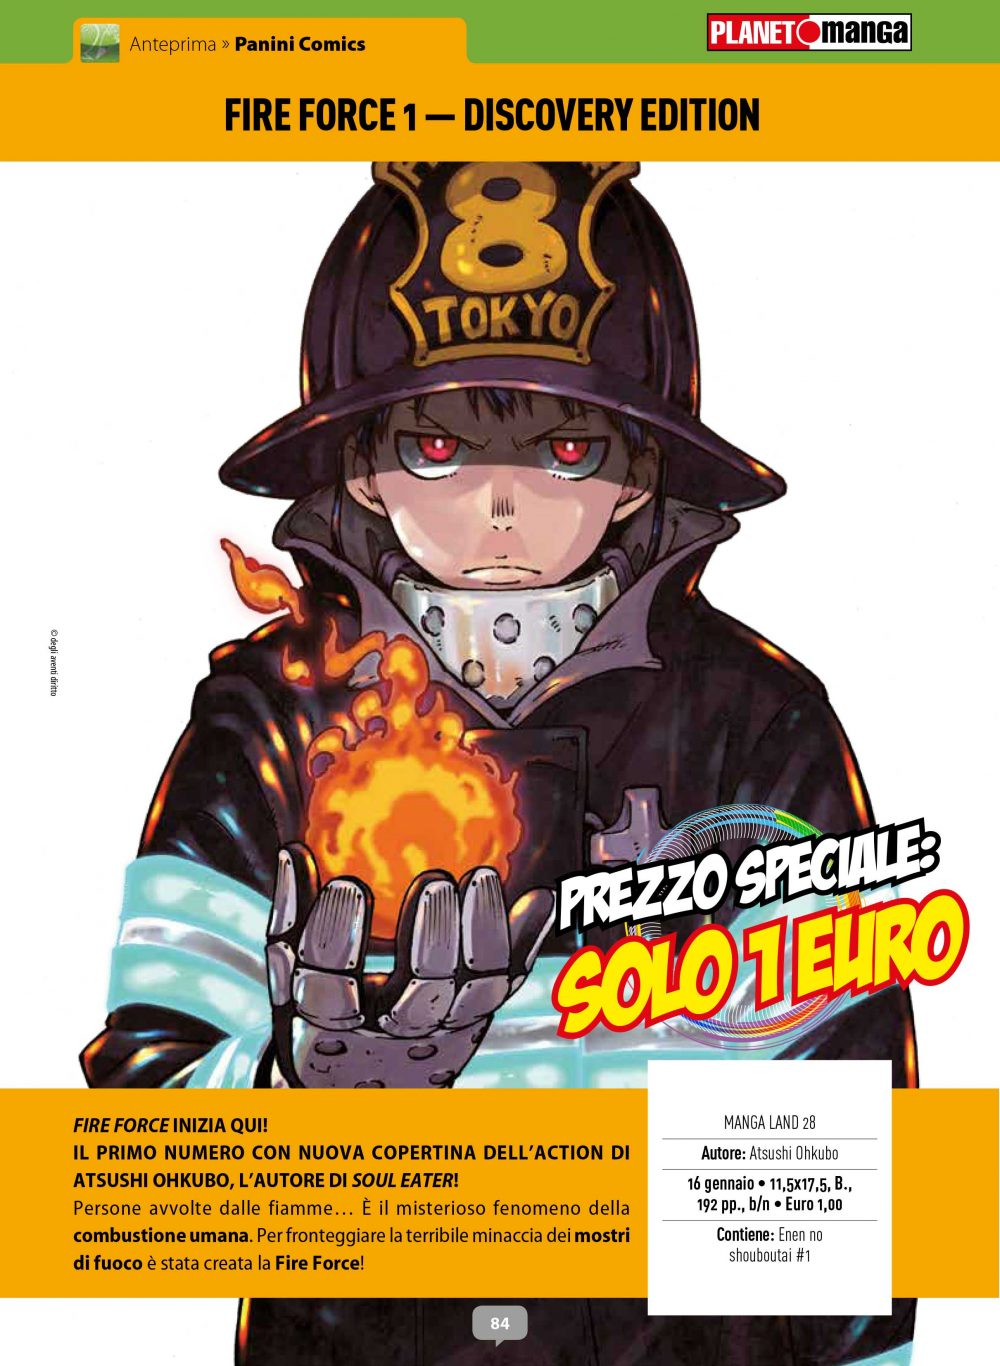 Fire Force - Discovery Edition, su Anteprima